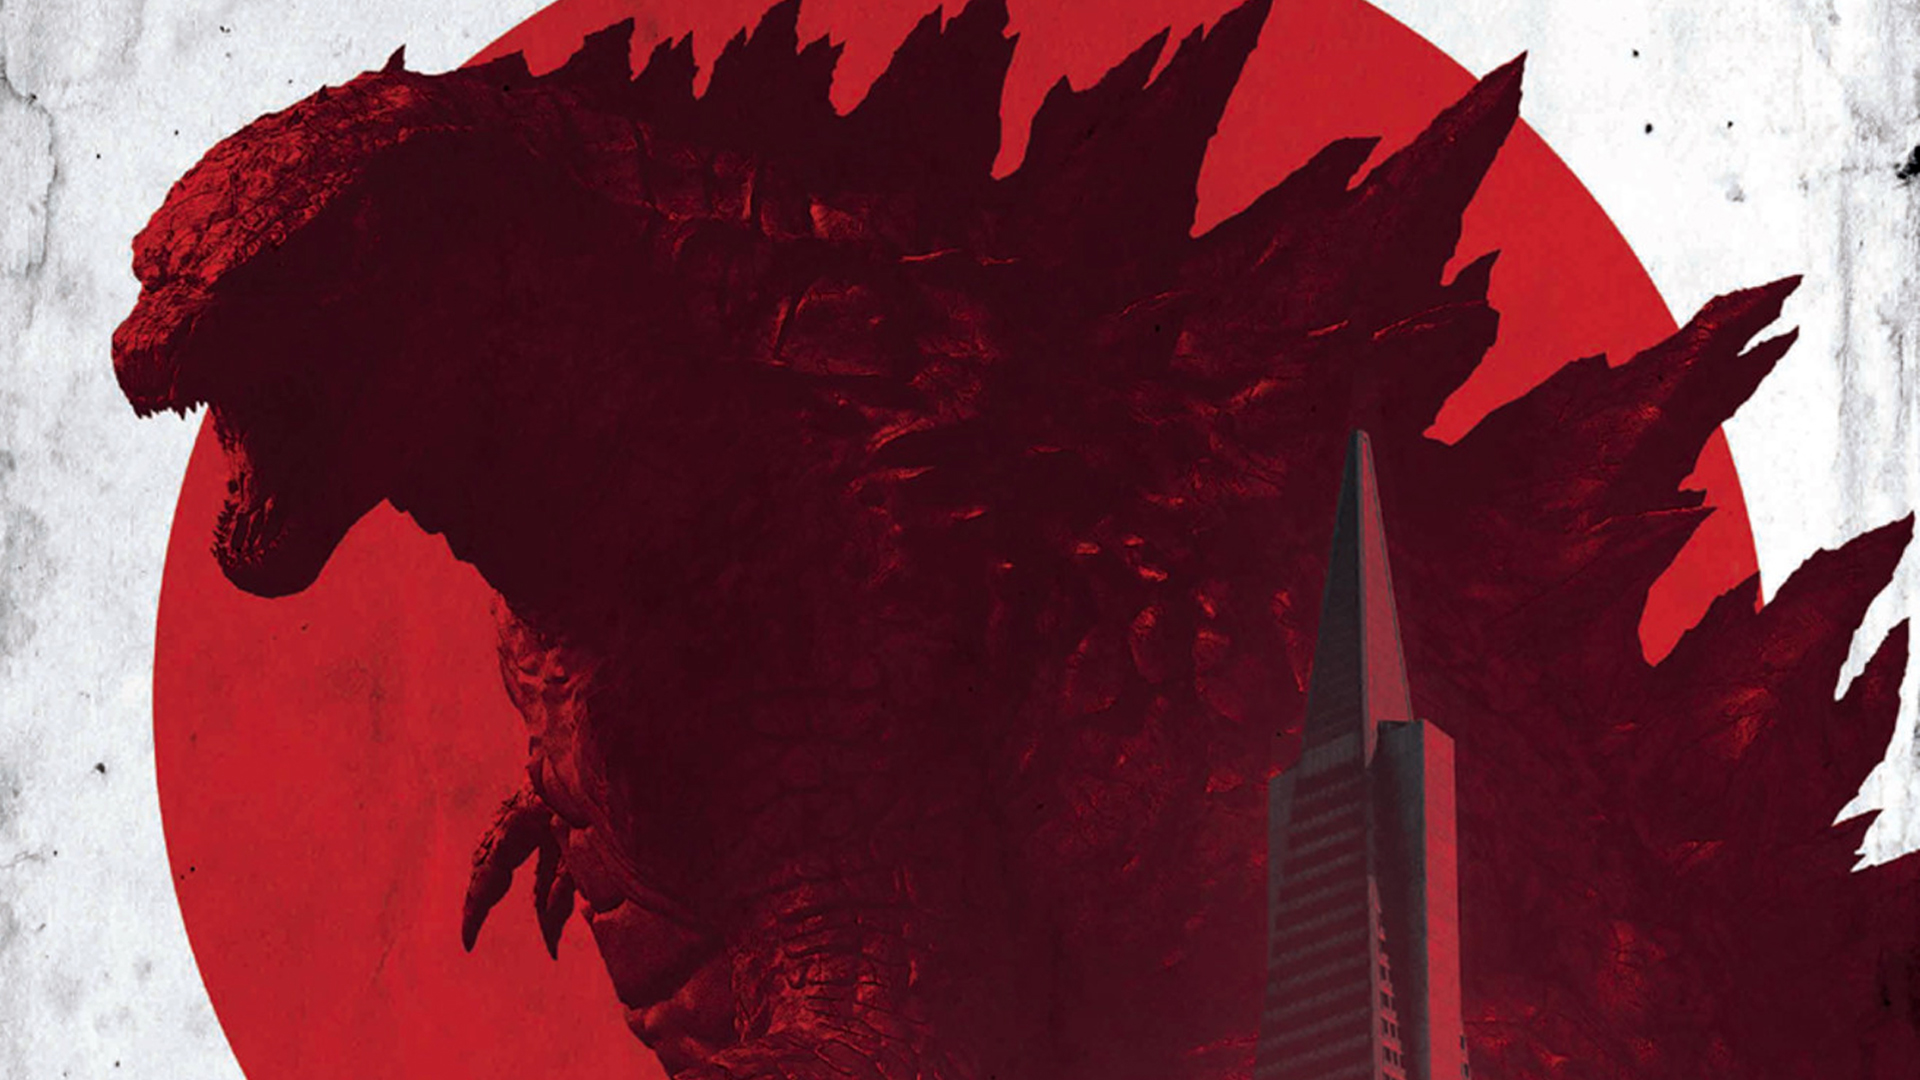 godzilla 2014 movie hd 1920x1080 1080p wallpaper 1920x1080